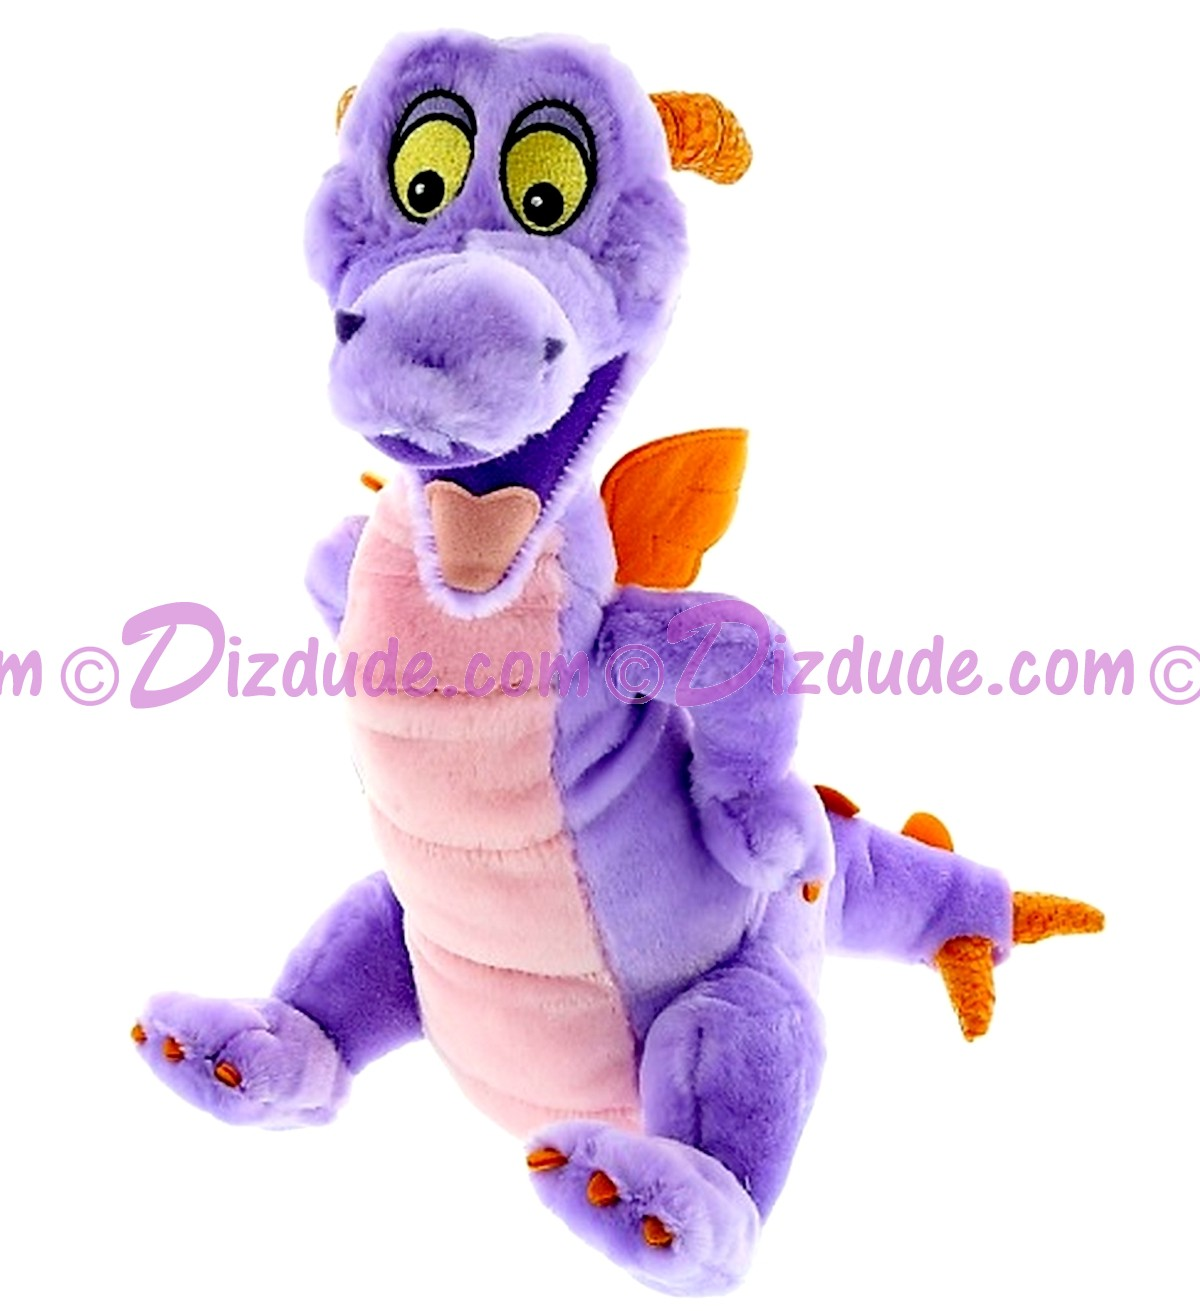 Figment 9 Inch Plush - Disney Epcot Center © Dizdude.com